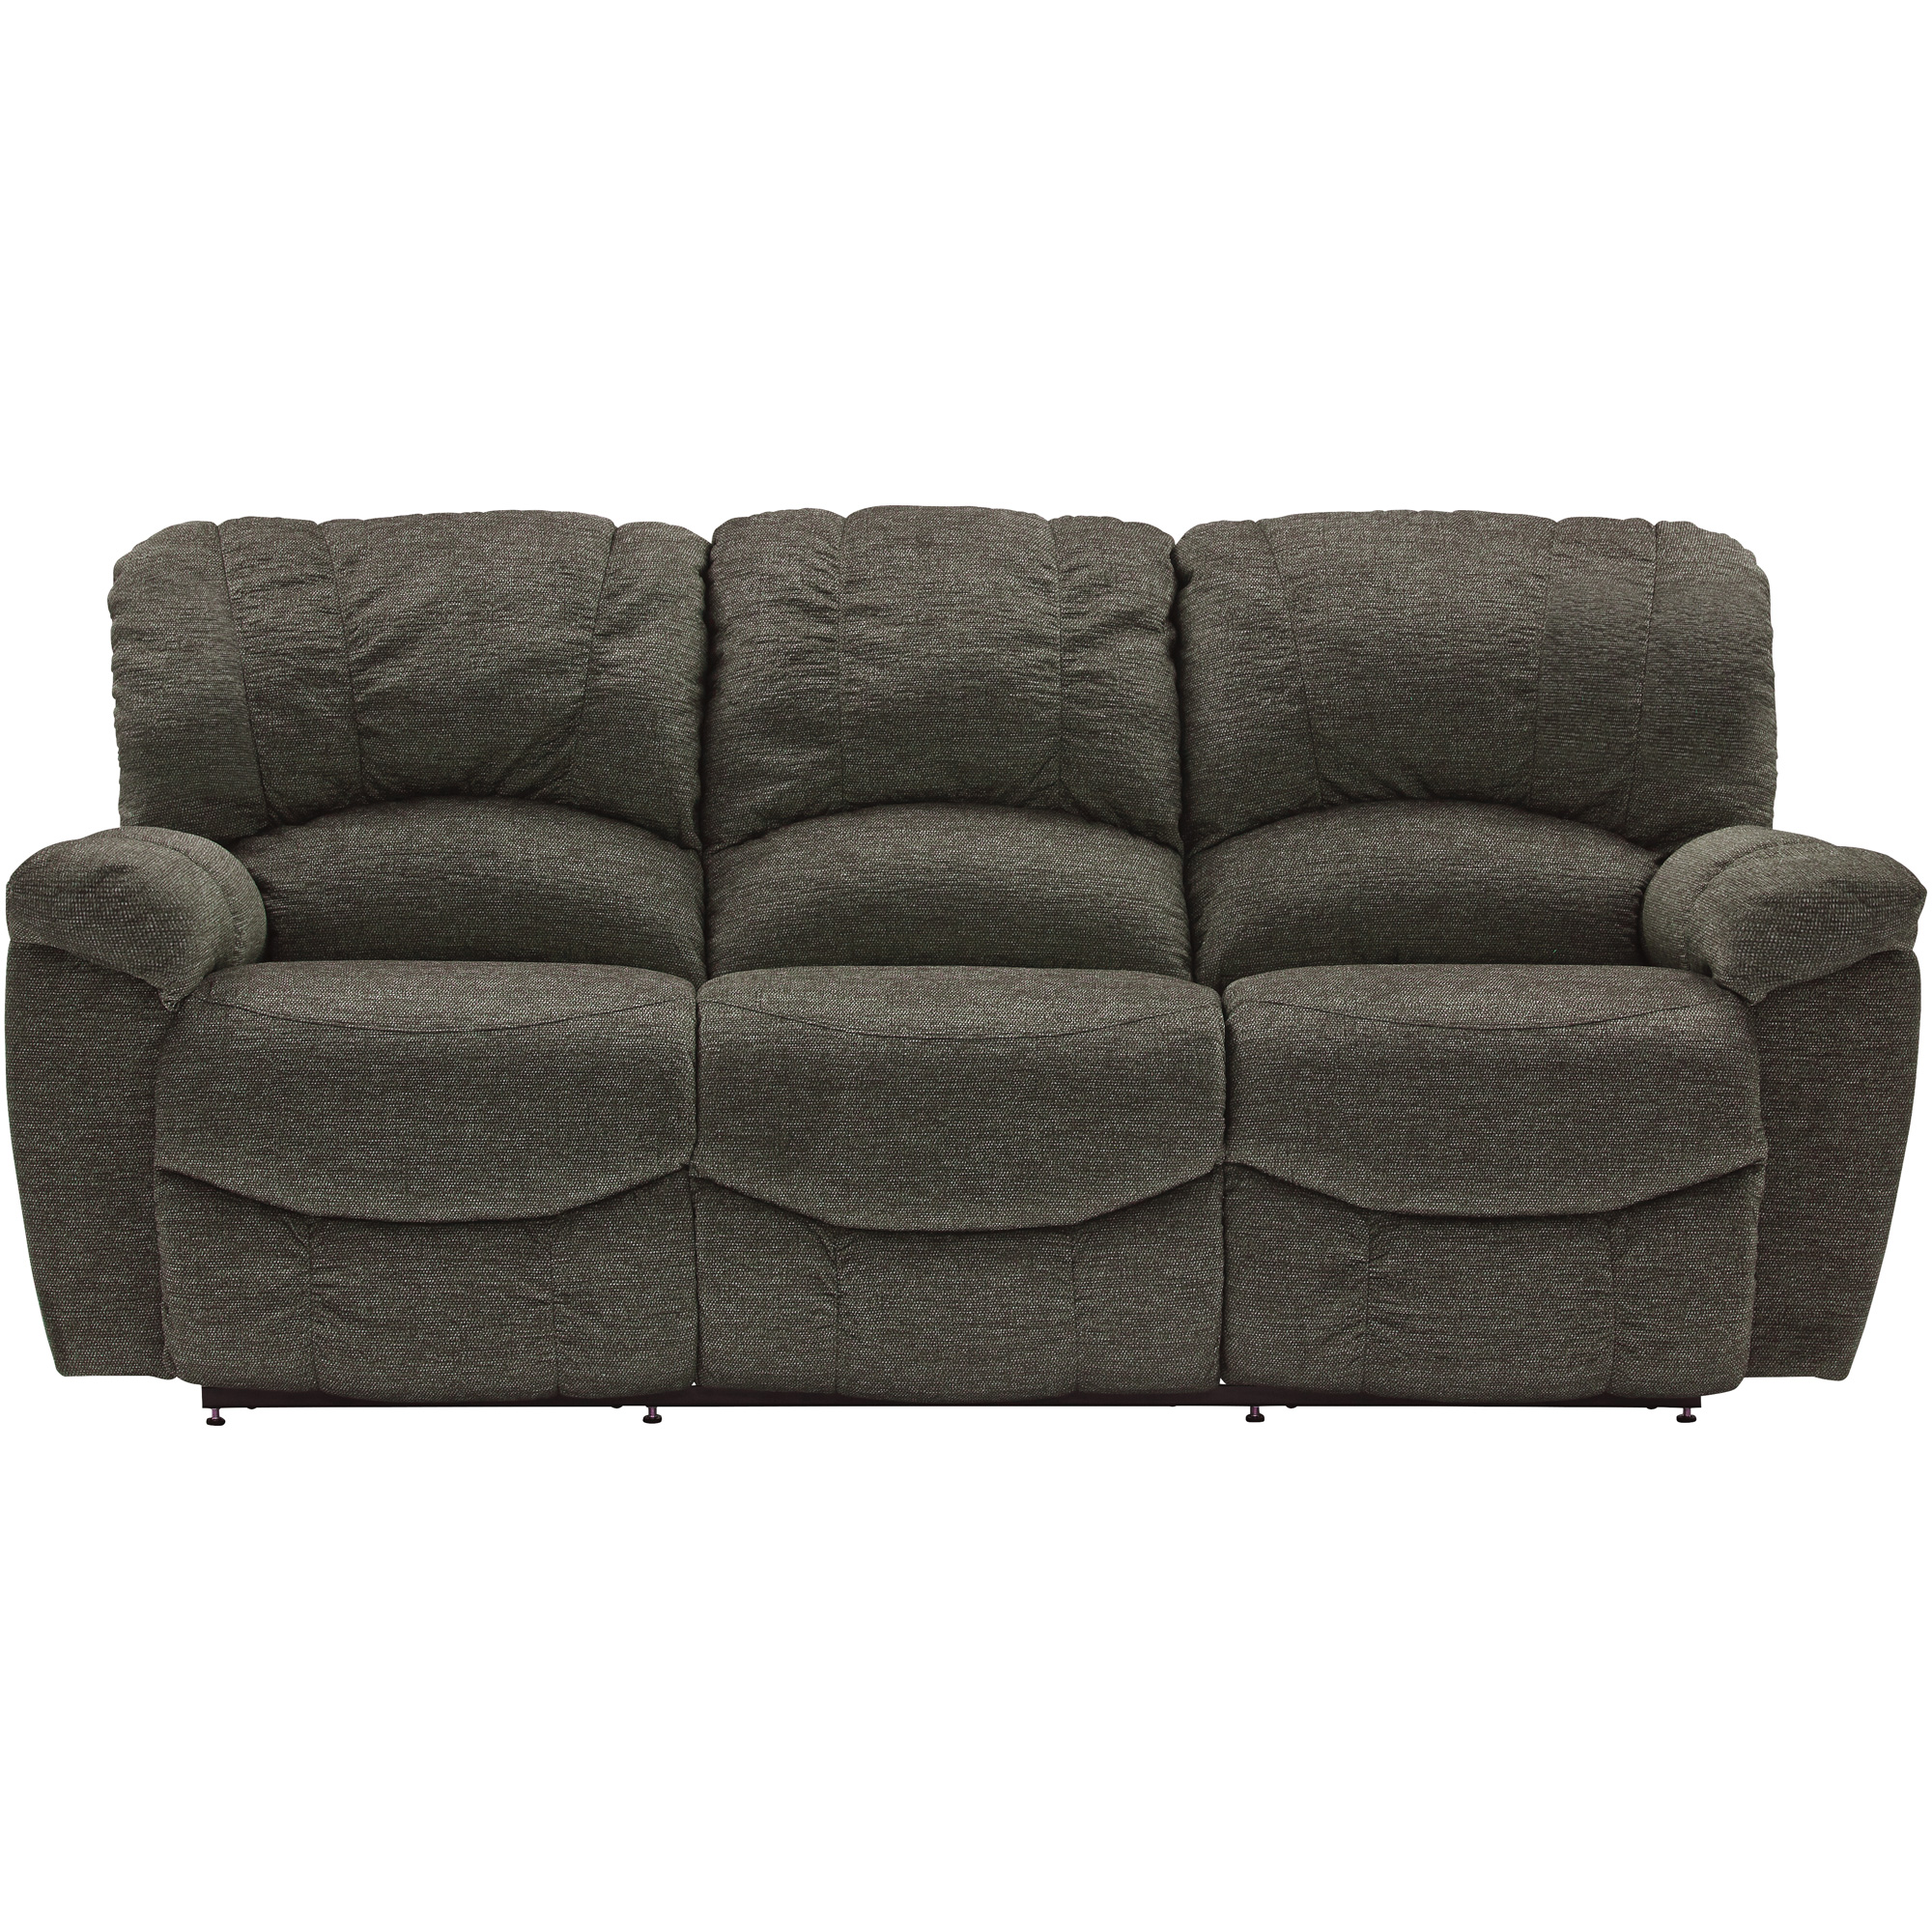 La-Z-Boy | Hayes Sable Reclining Sofa